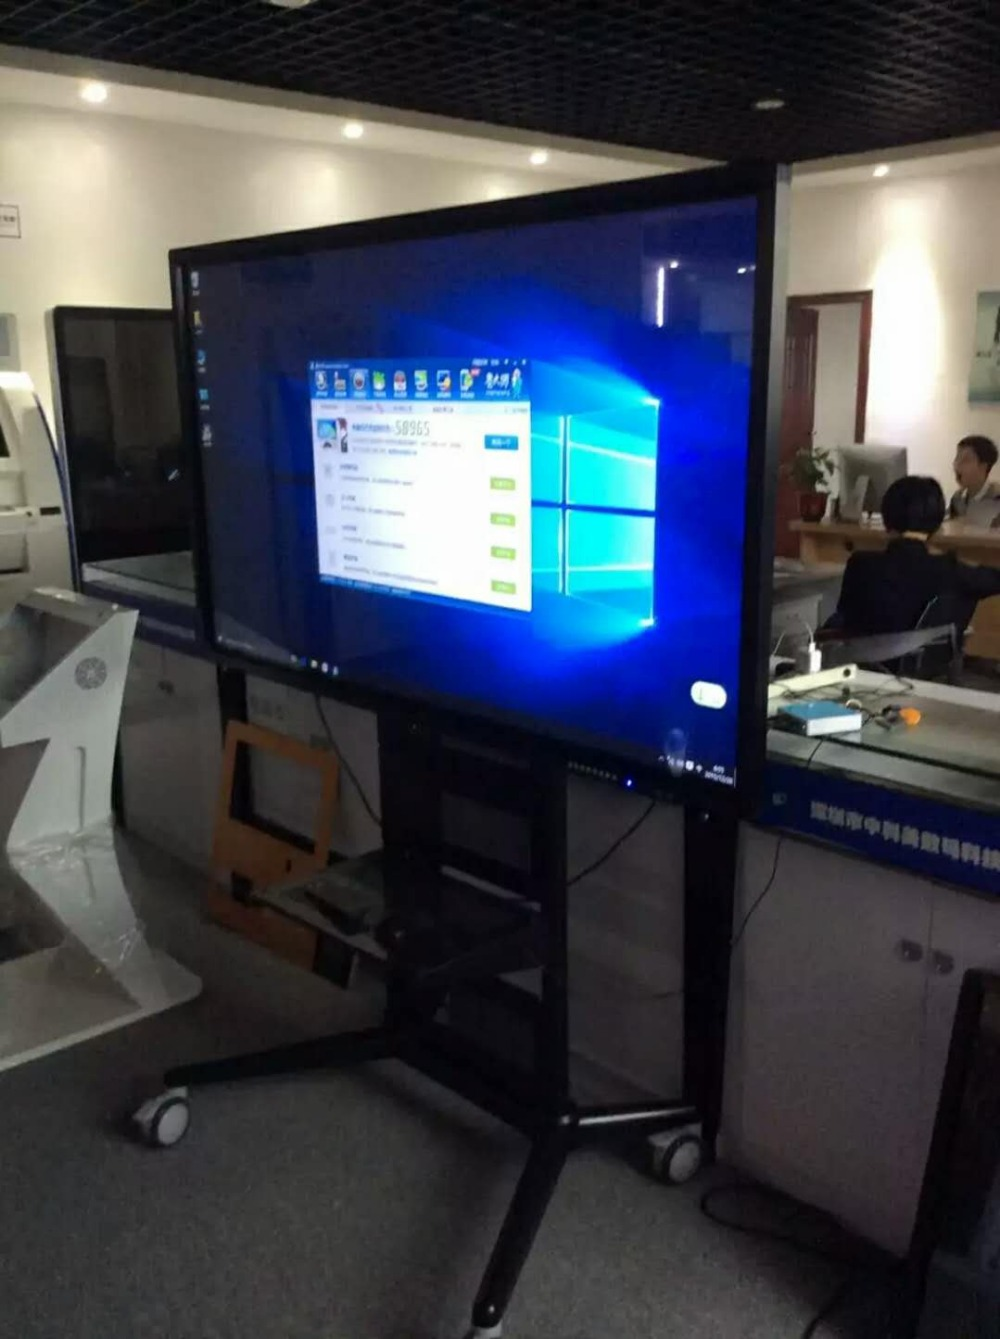 DIY PC With Mobile Stand And Touch Interactive 42 47 55 65 70 Inch Digital Monitor For Shopping Mall School Hotel Hospital